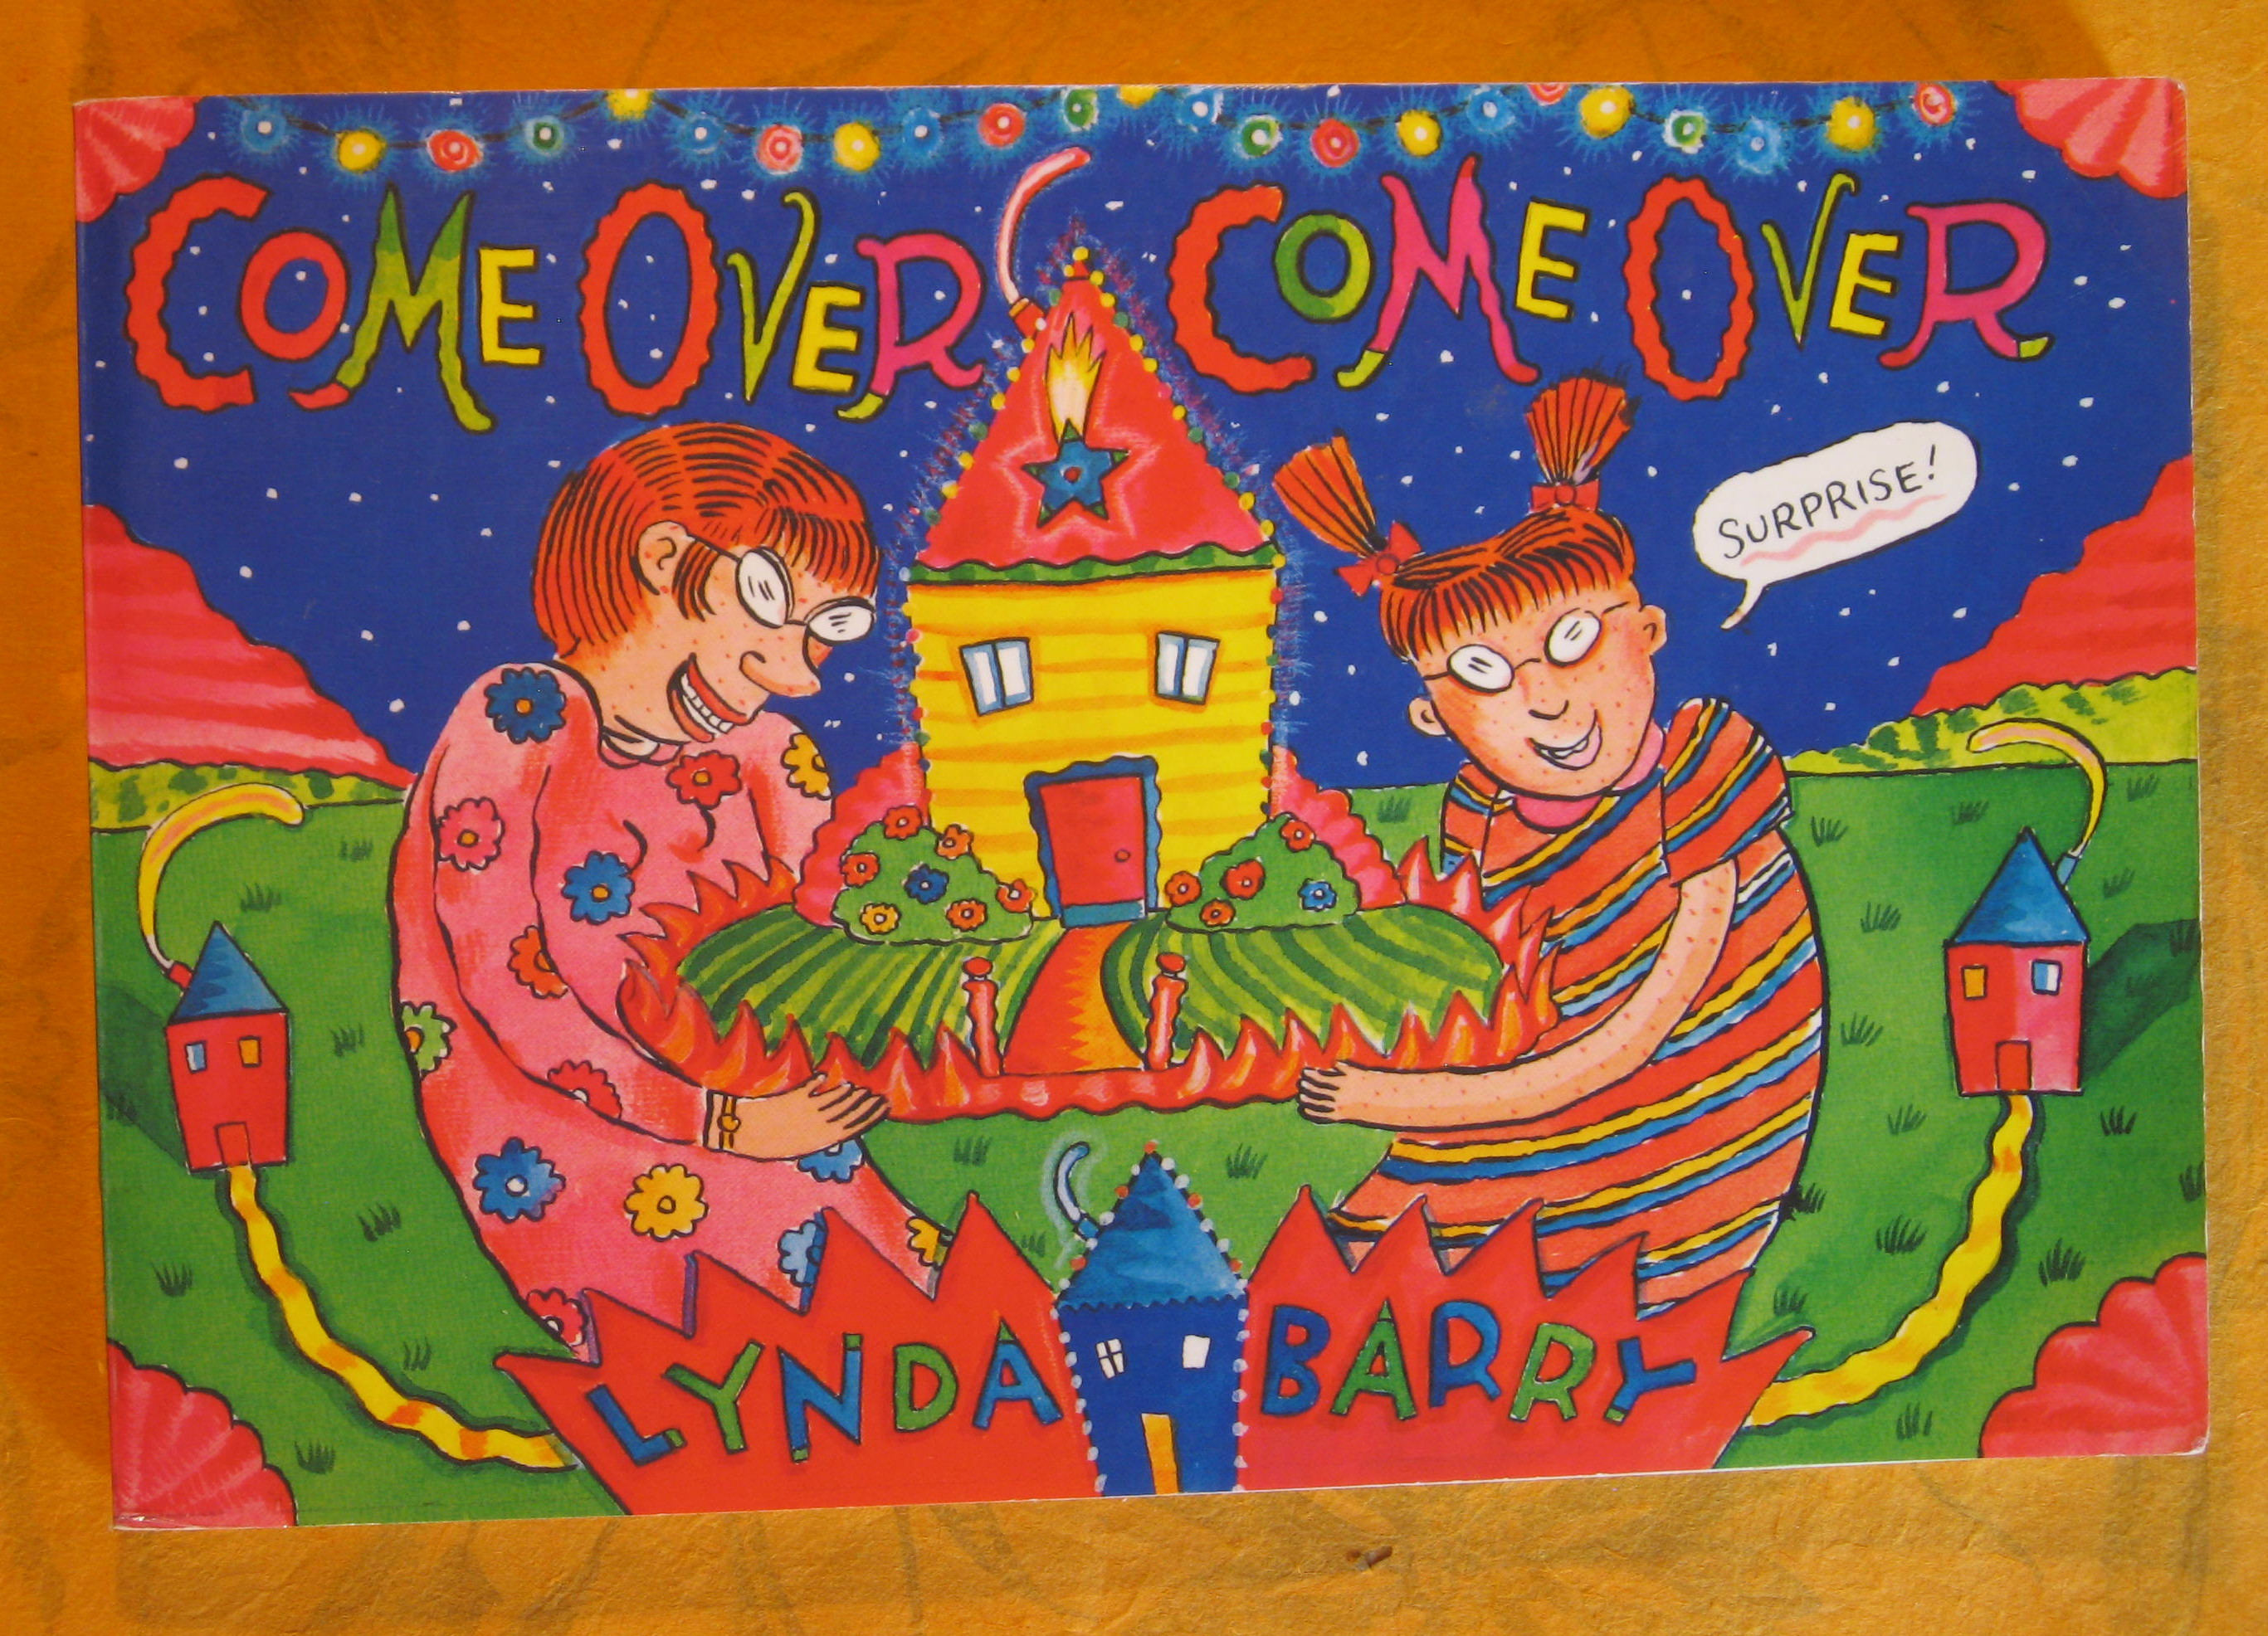 Image for Come Over, Come Over